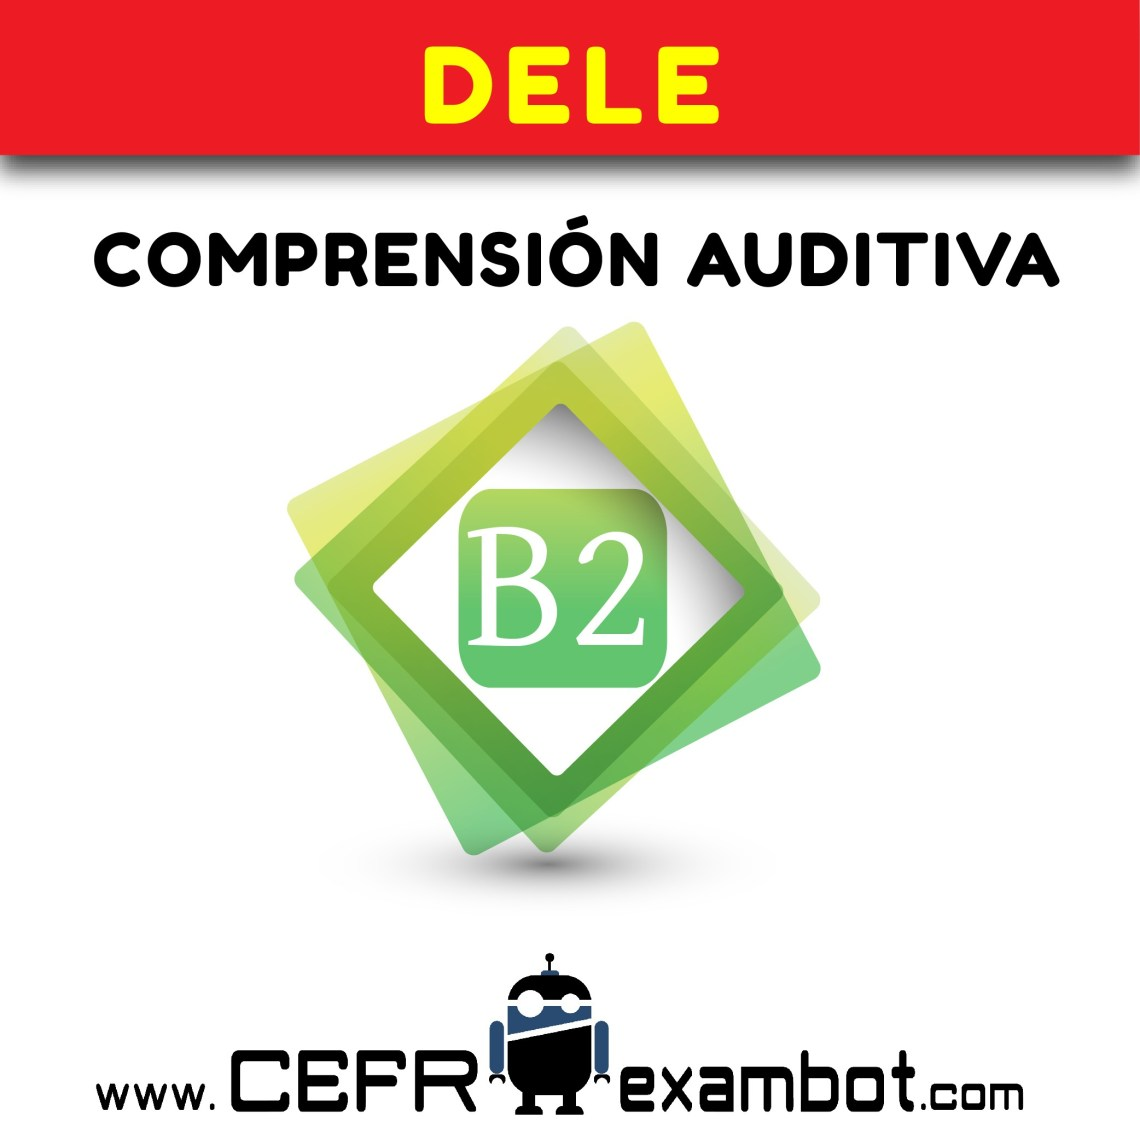 DELE B2 Examen Comprension Auditiva www.CEFRexambot.com